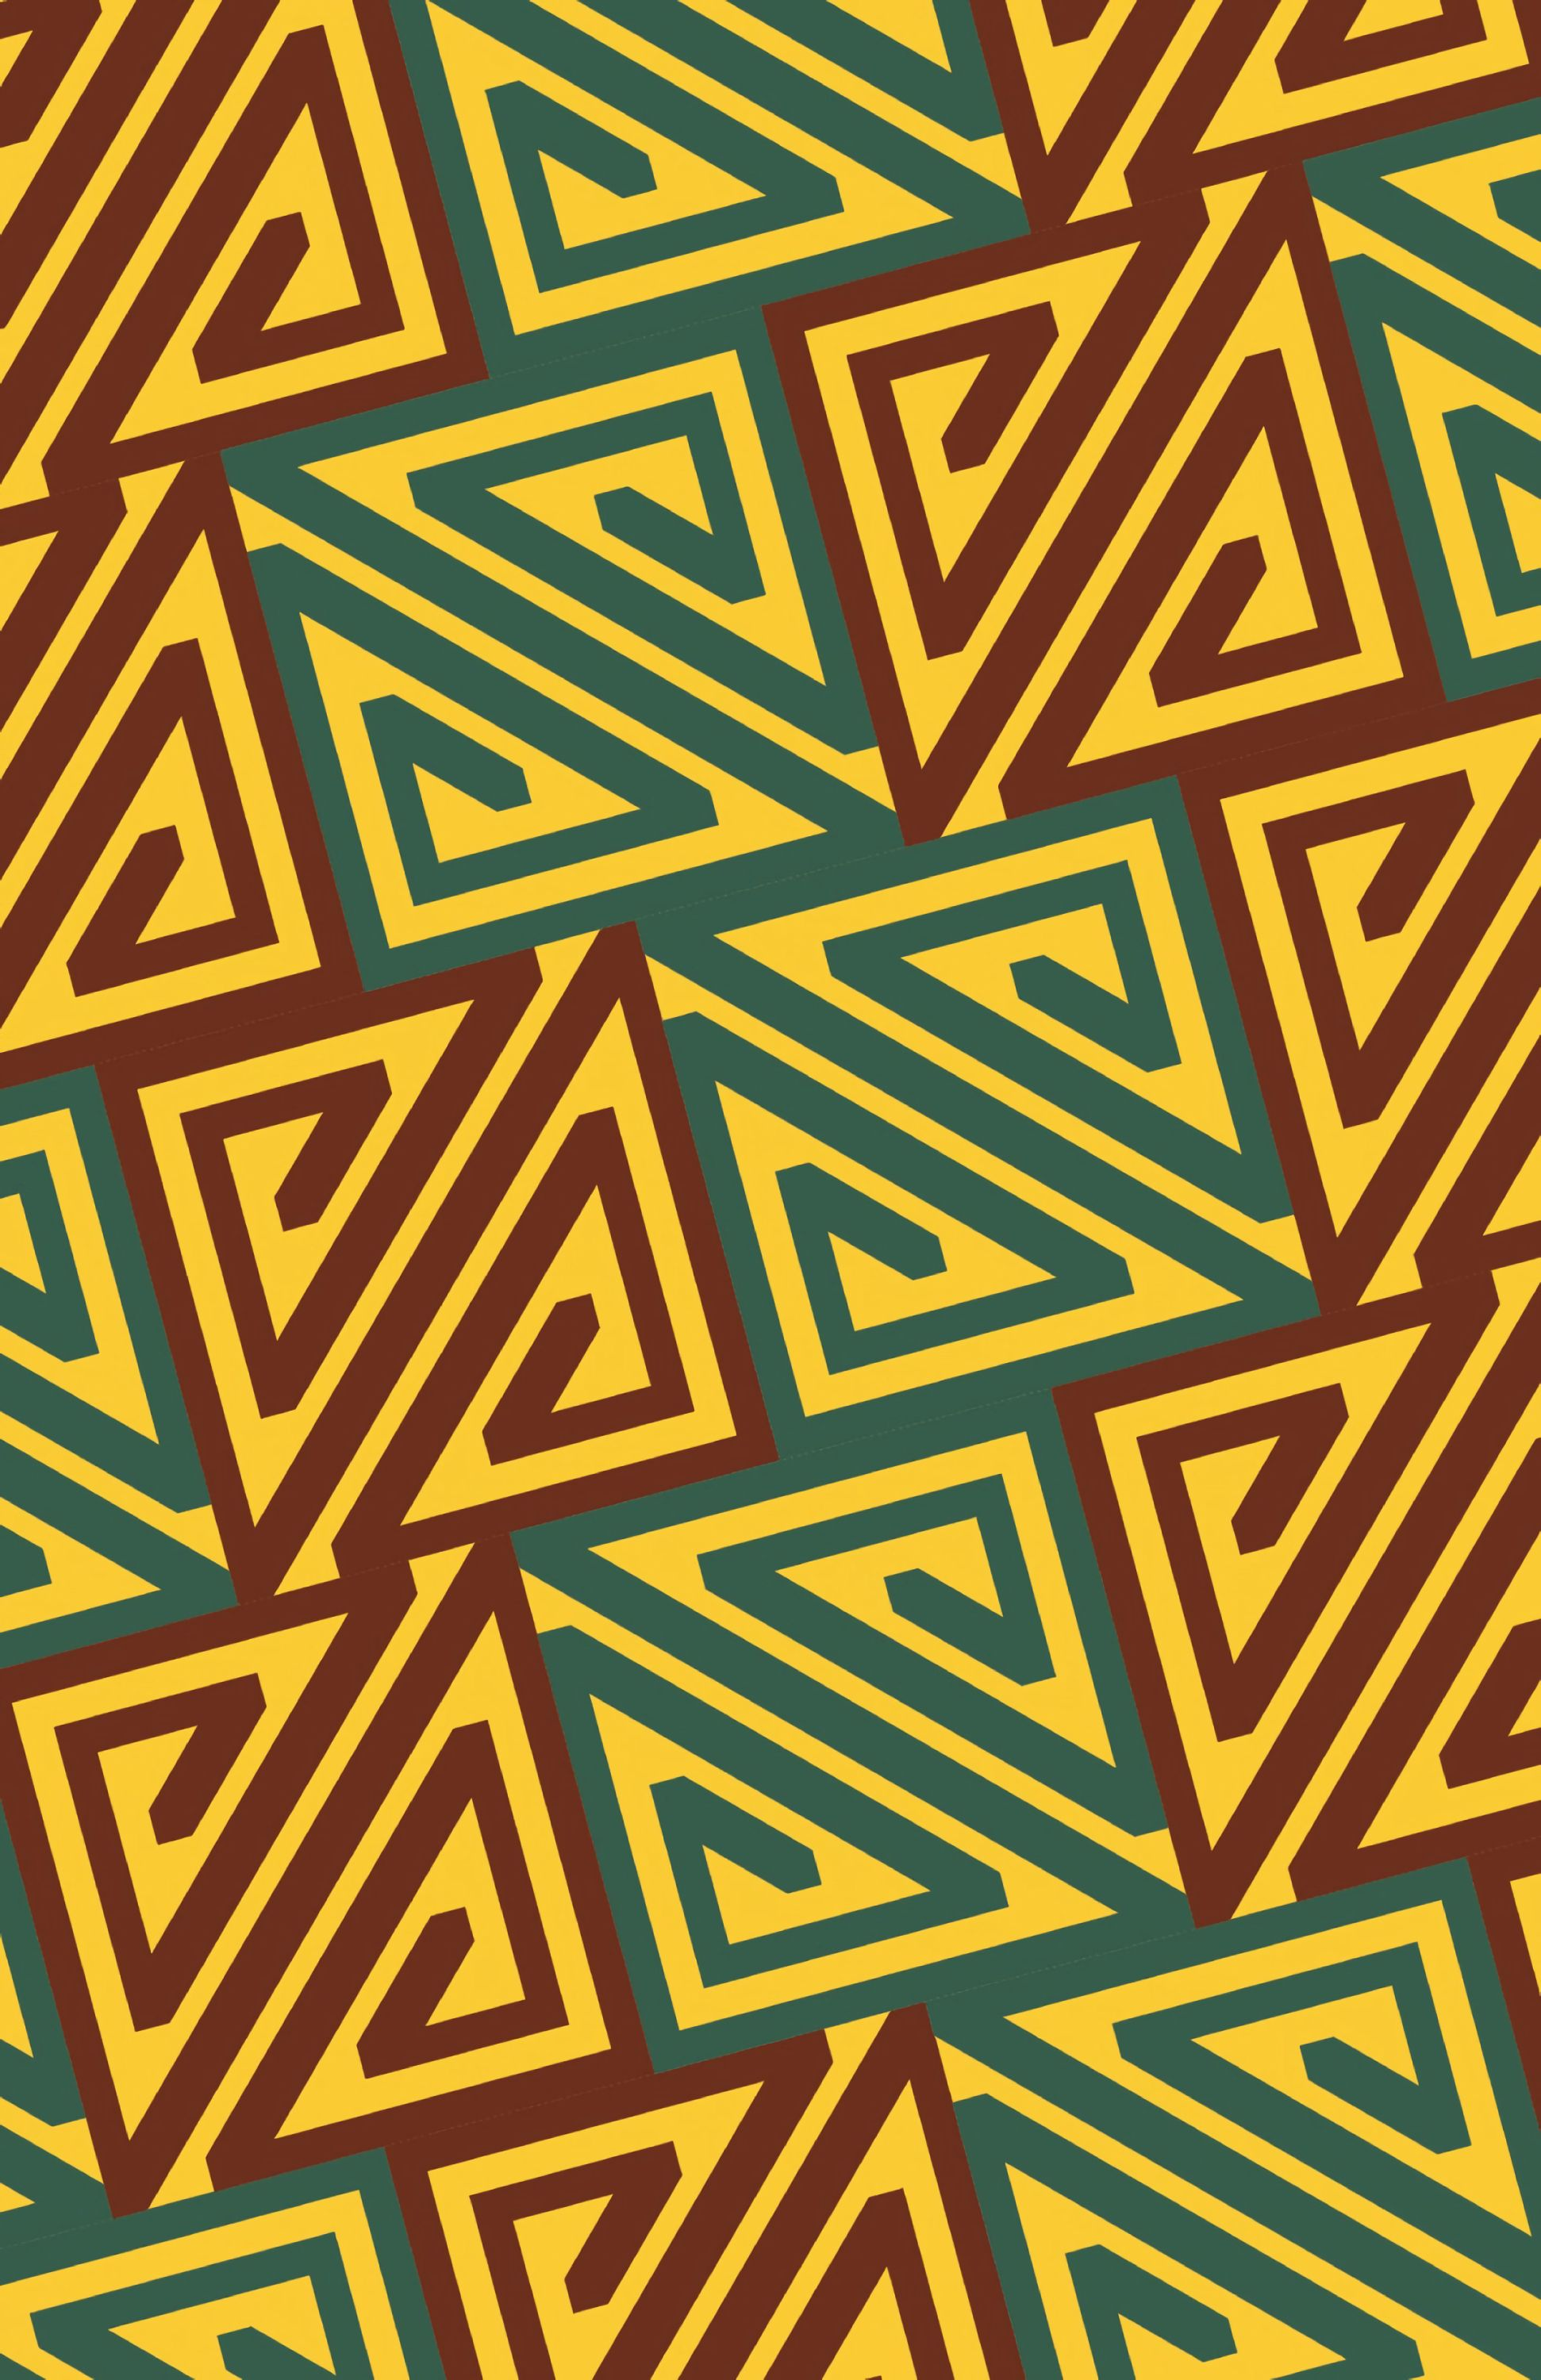 145419 download wallpaper Patterns, Texture, Textures, Brown, Form screensavers and pictures for free